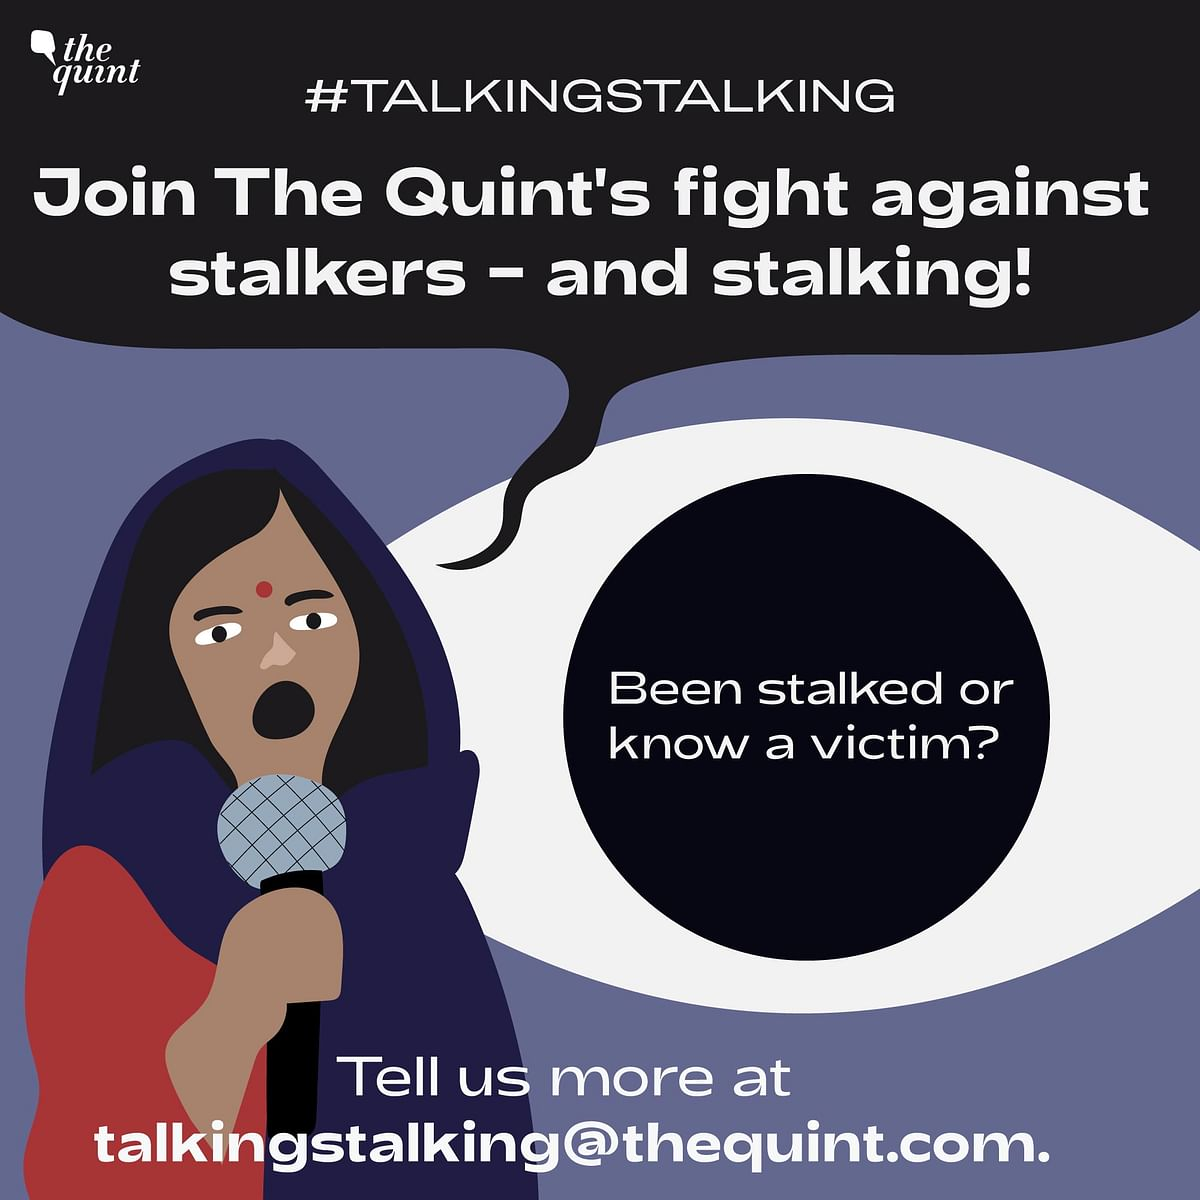 #TalkingStalking: Why India Should Make Stalking Non-Bailable